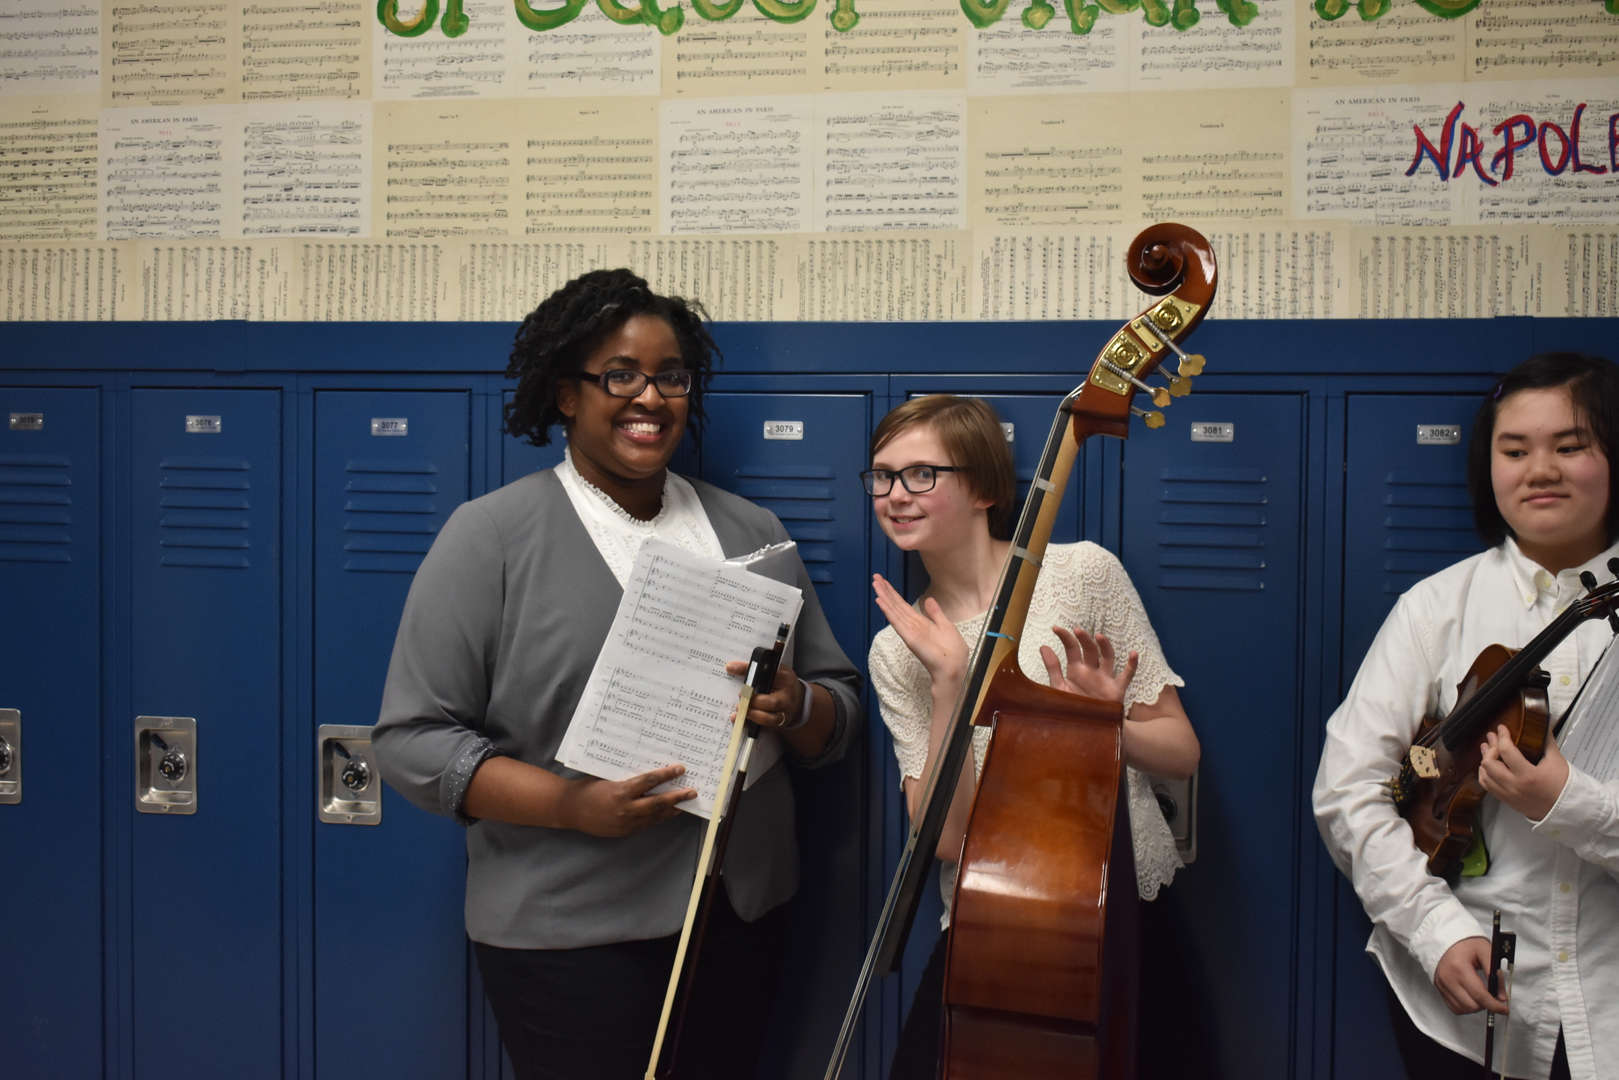 Student and Orchestra Director